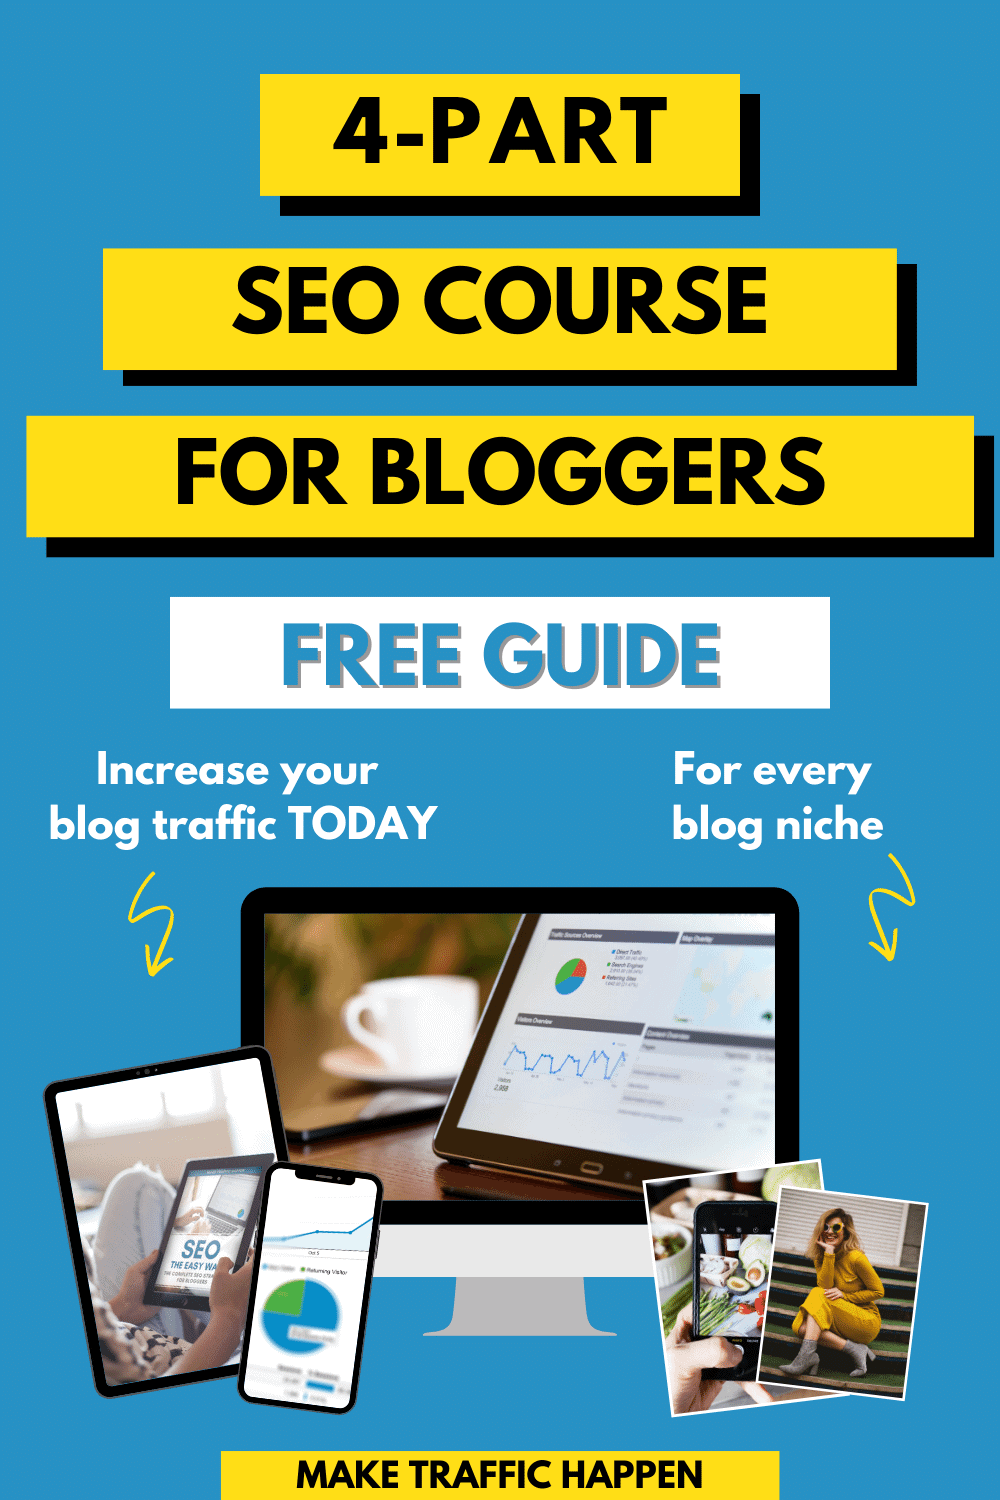 Sign up for Make Traffic Happen's free 4-part SEO course and increase your blog traffic today!